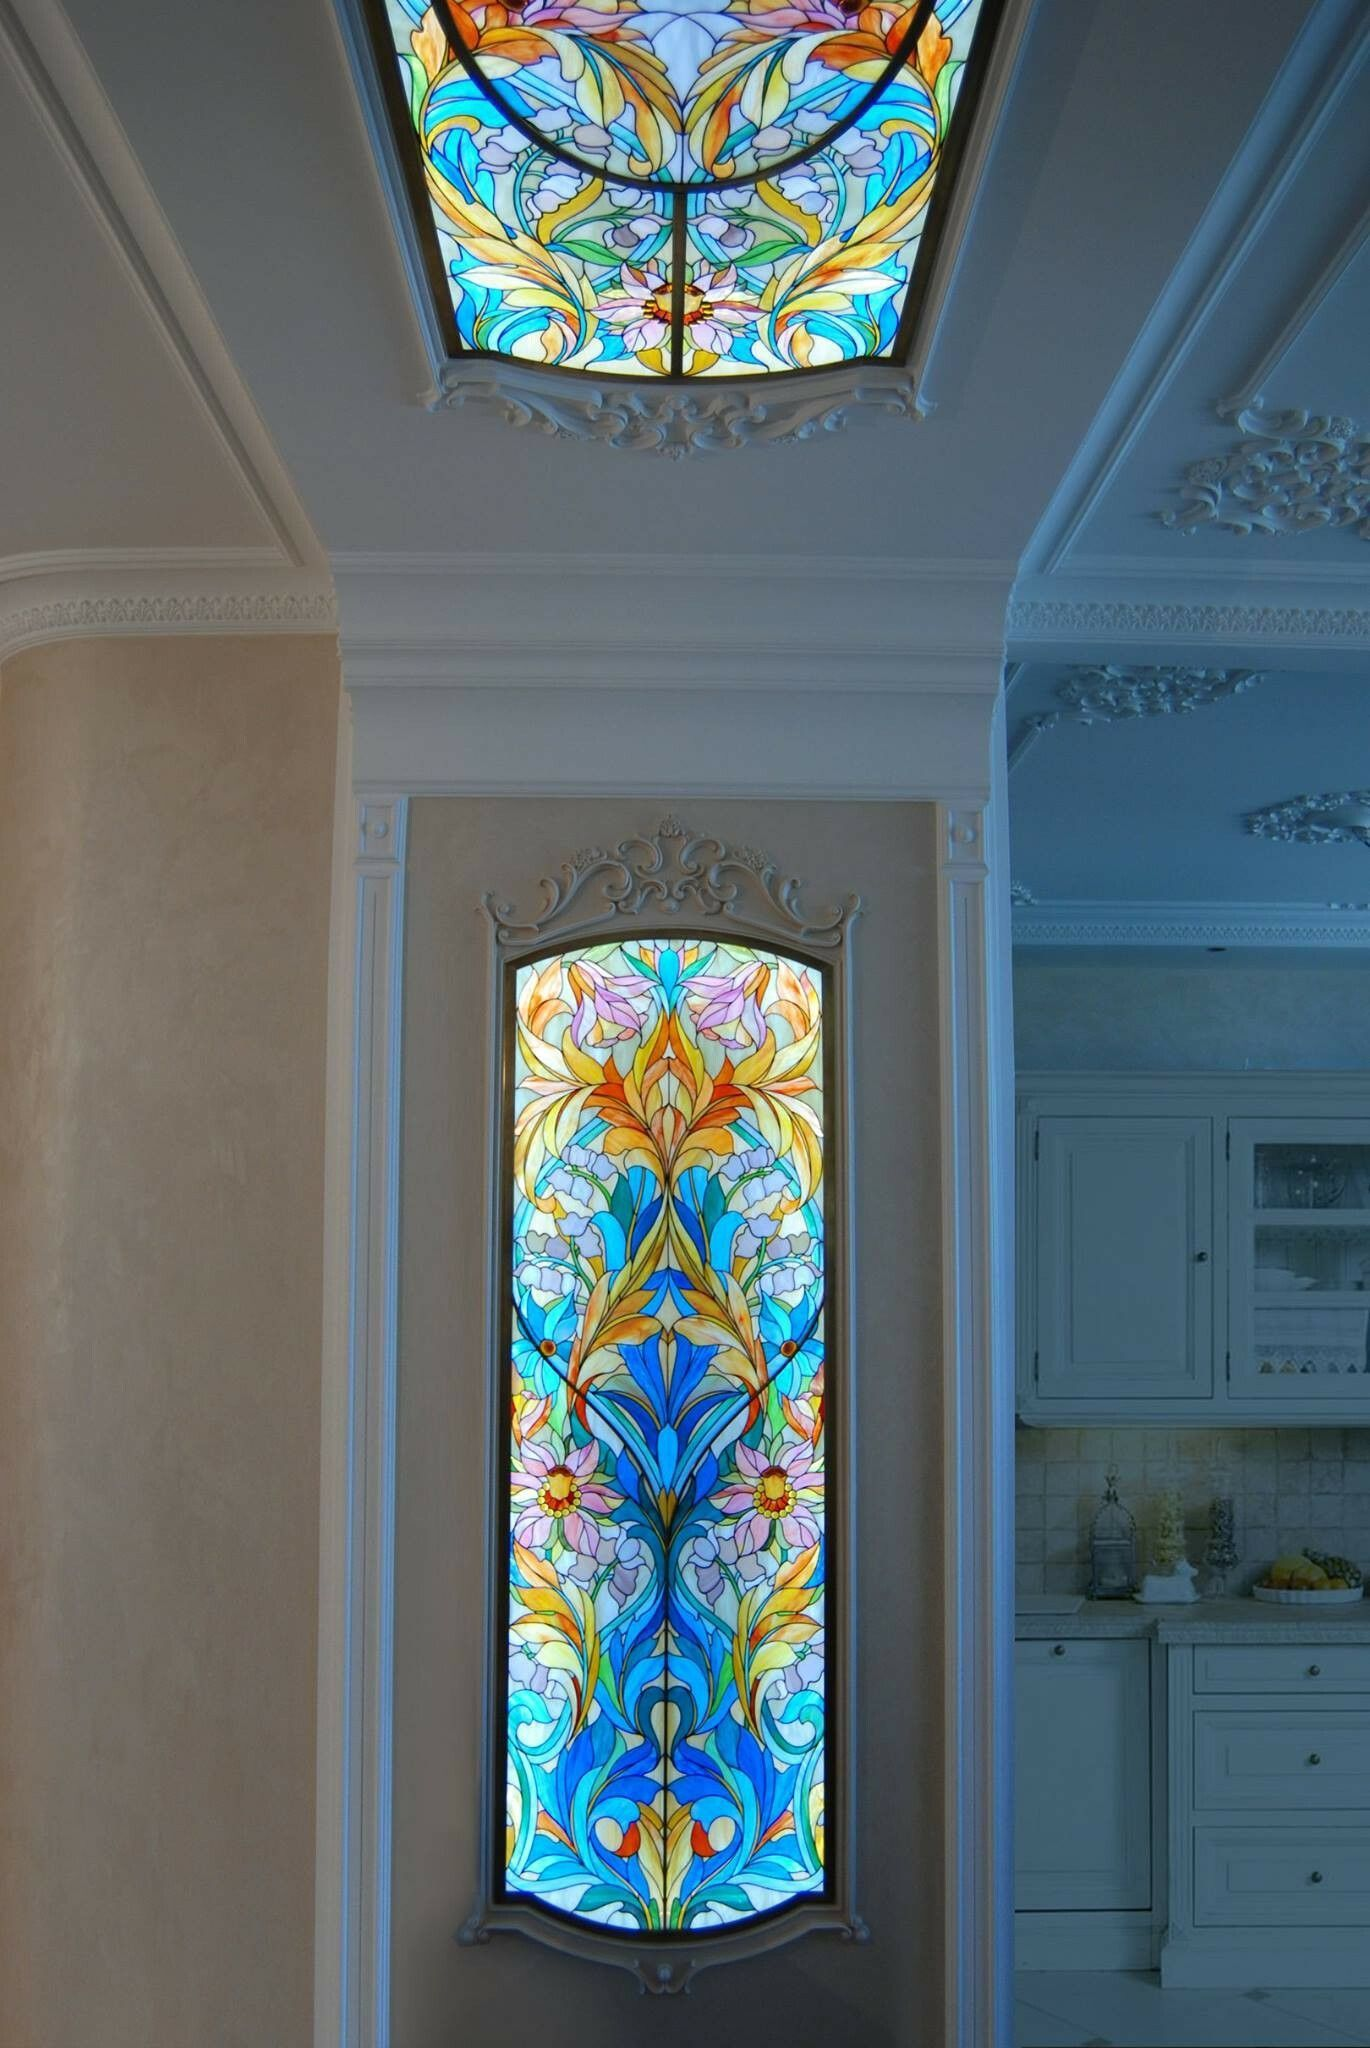 7df5508dd9a6e39d382cdfd826f5bf23 Jpg 1 370 2 048 Pixels Stained Glass Door Stained Glass Designs Stained Glass Art